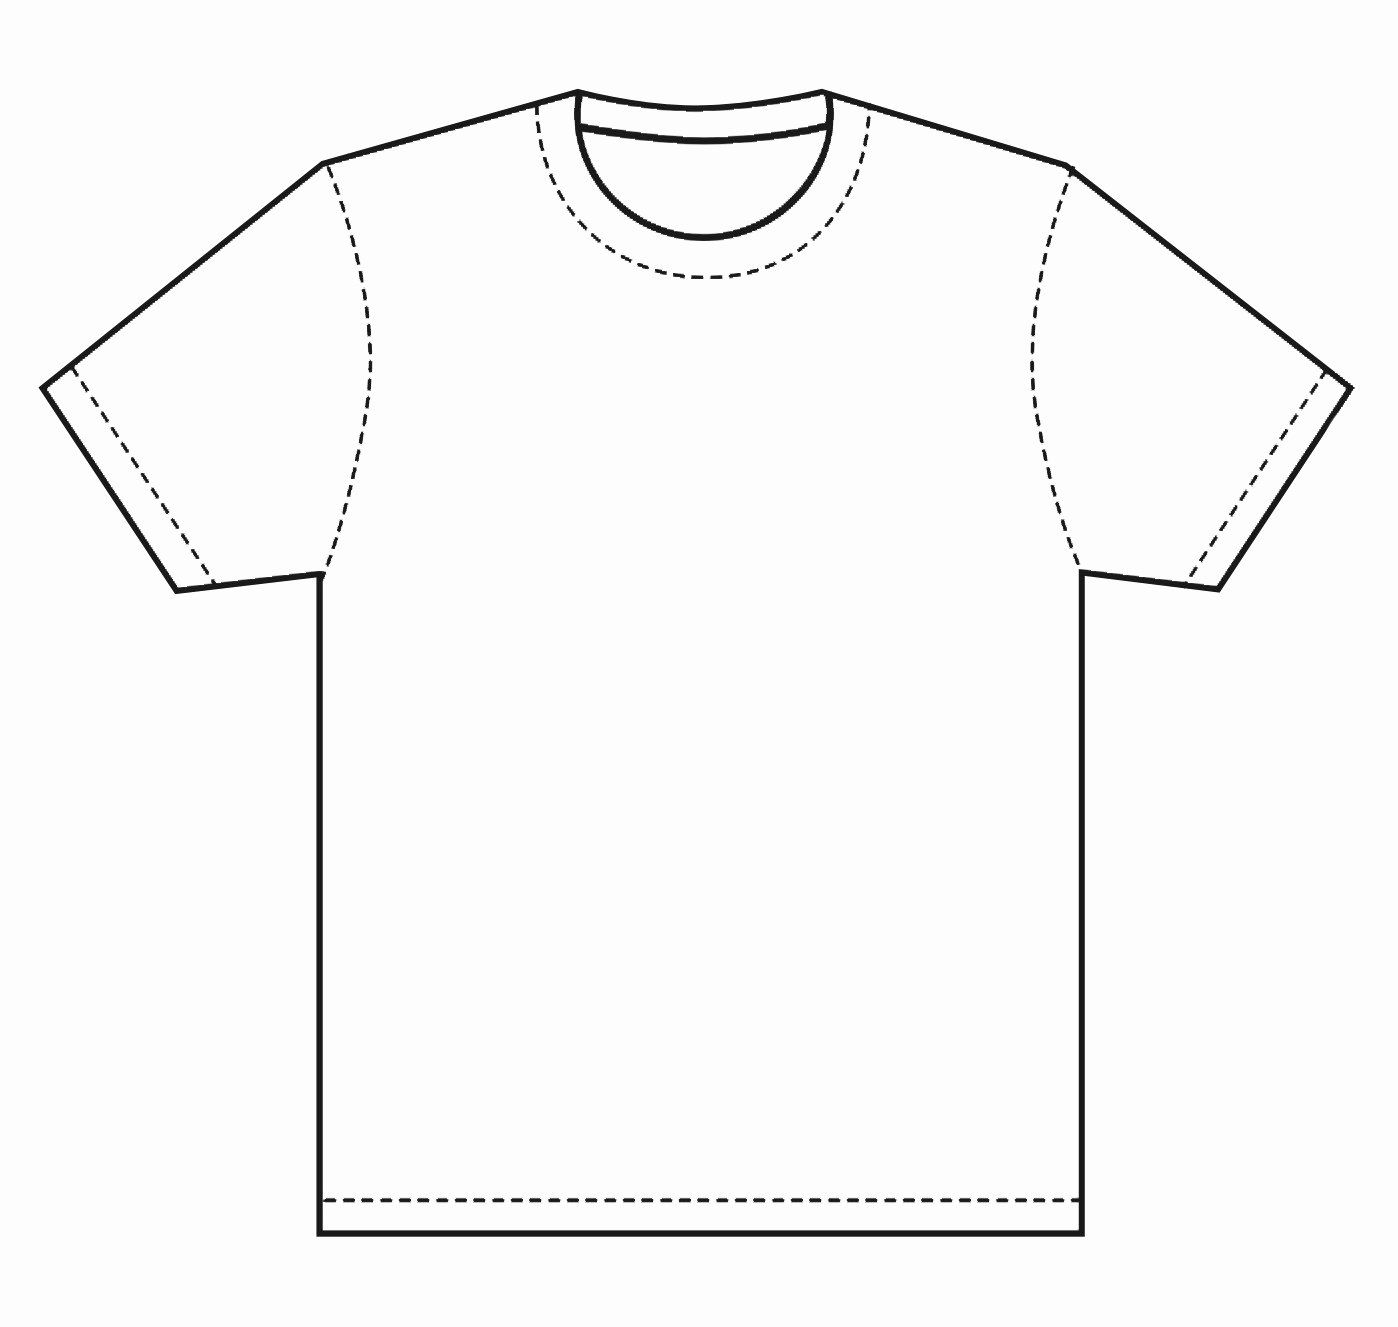 Blank Tshirt Template Awesome Blank T Shirt Coloring Page Thekindproject Shirt Sketch Shirt Drawing Shirt Template